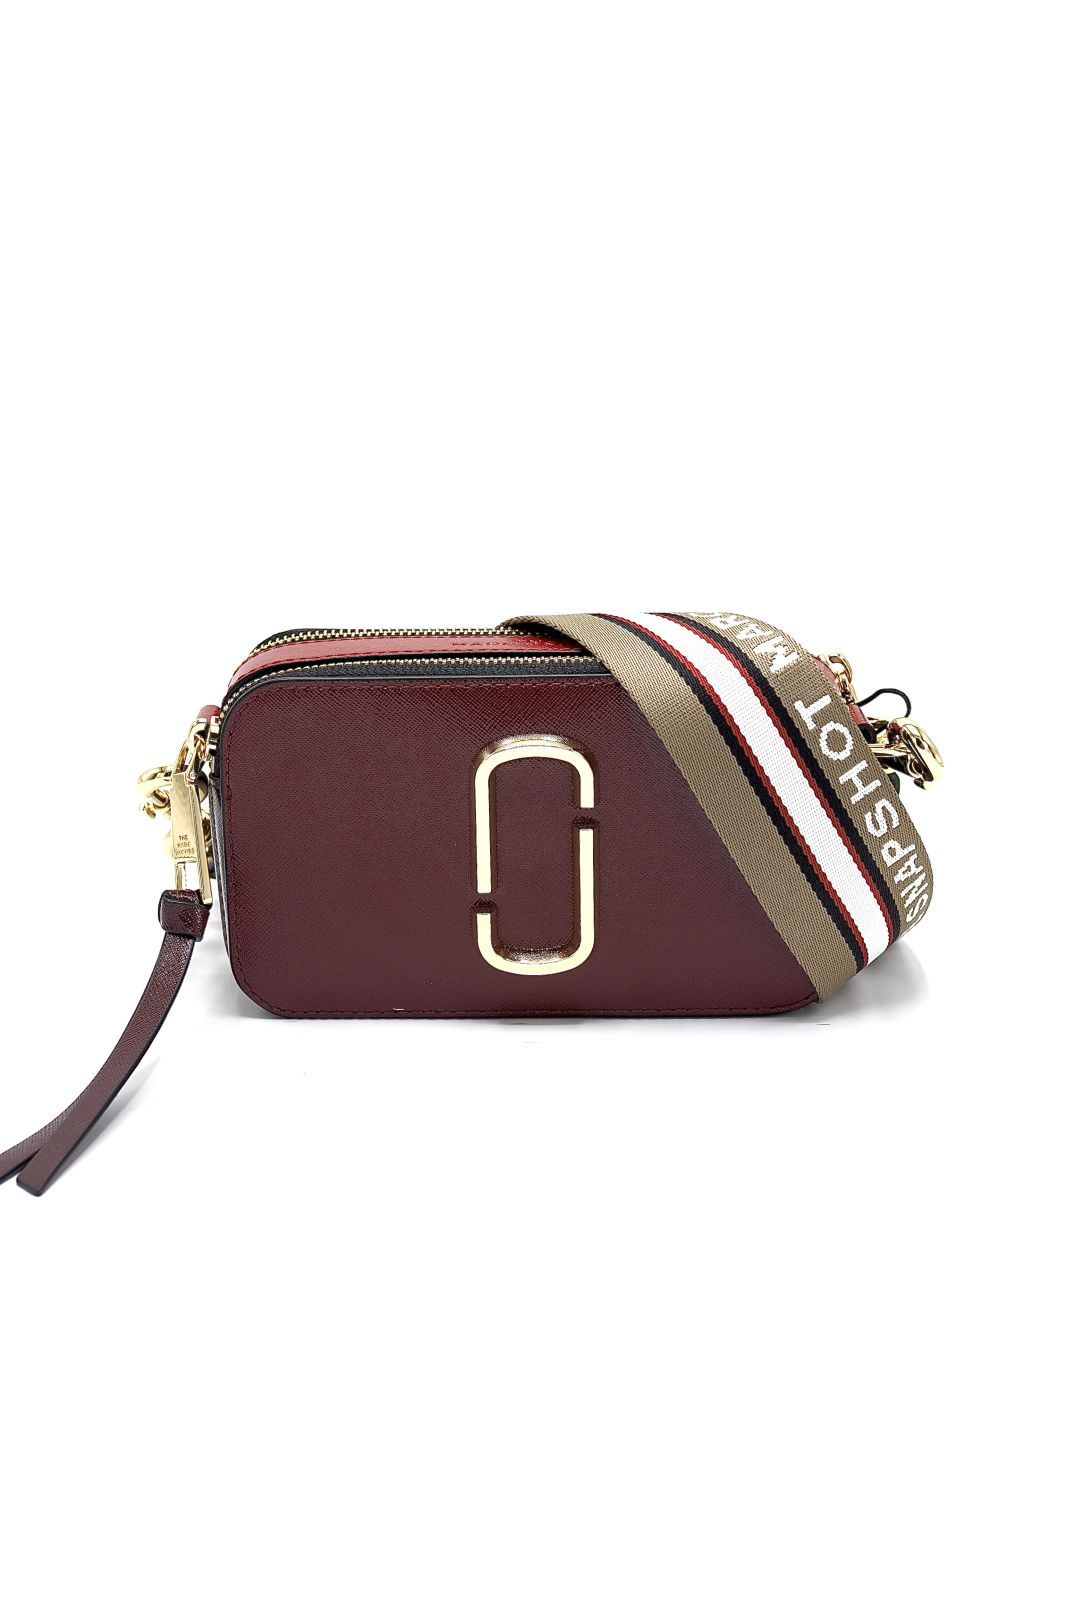 Marc Jacobs sac Bordeau femmes (MJACOBS-Snapshot bordeaux  - SNAPSHOT 21 12007-940 cranberr) - Marine | Much more than shoes